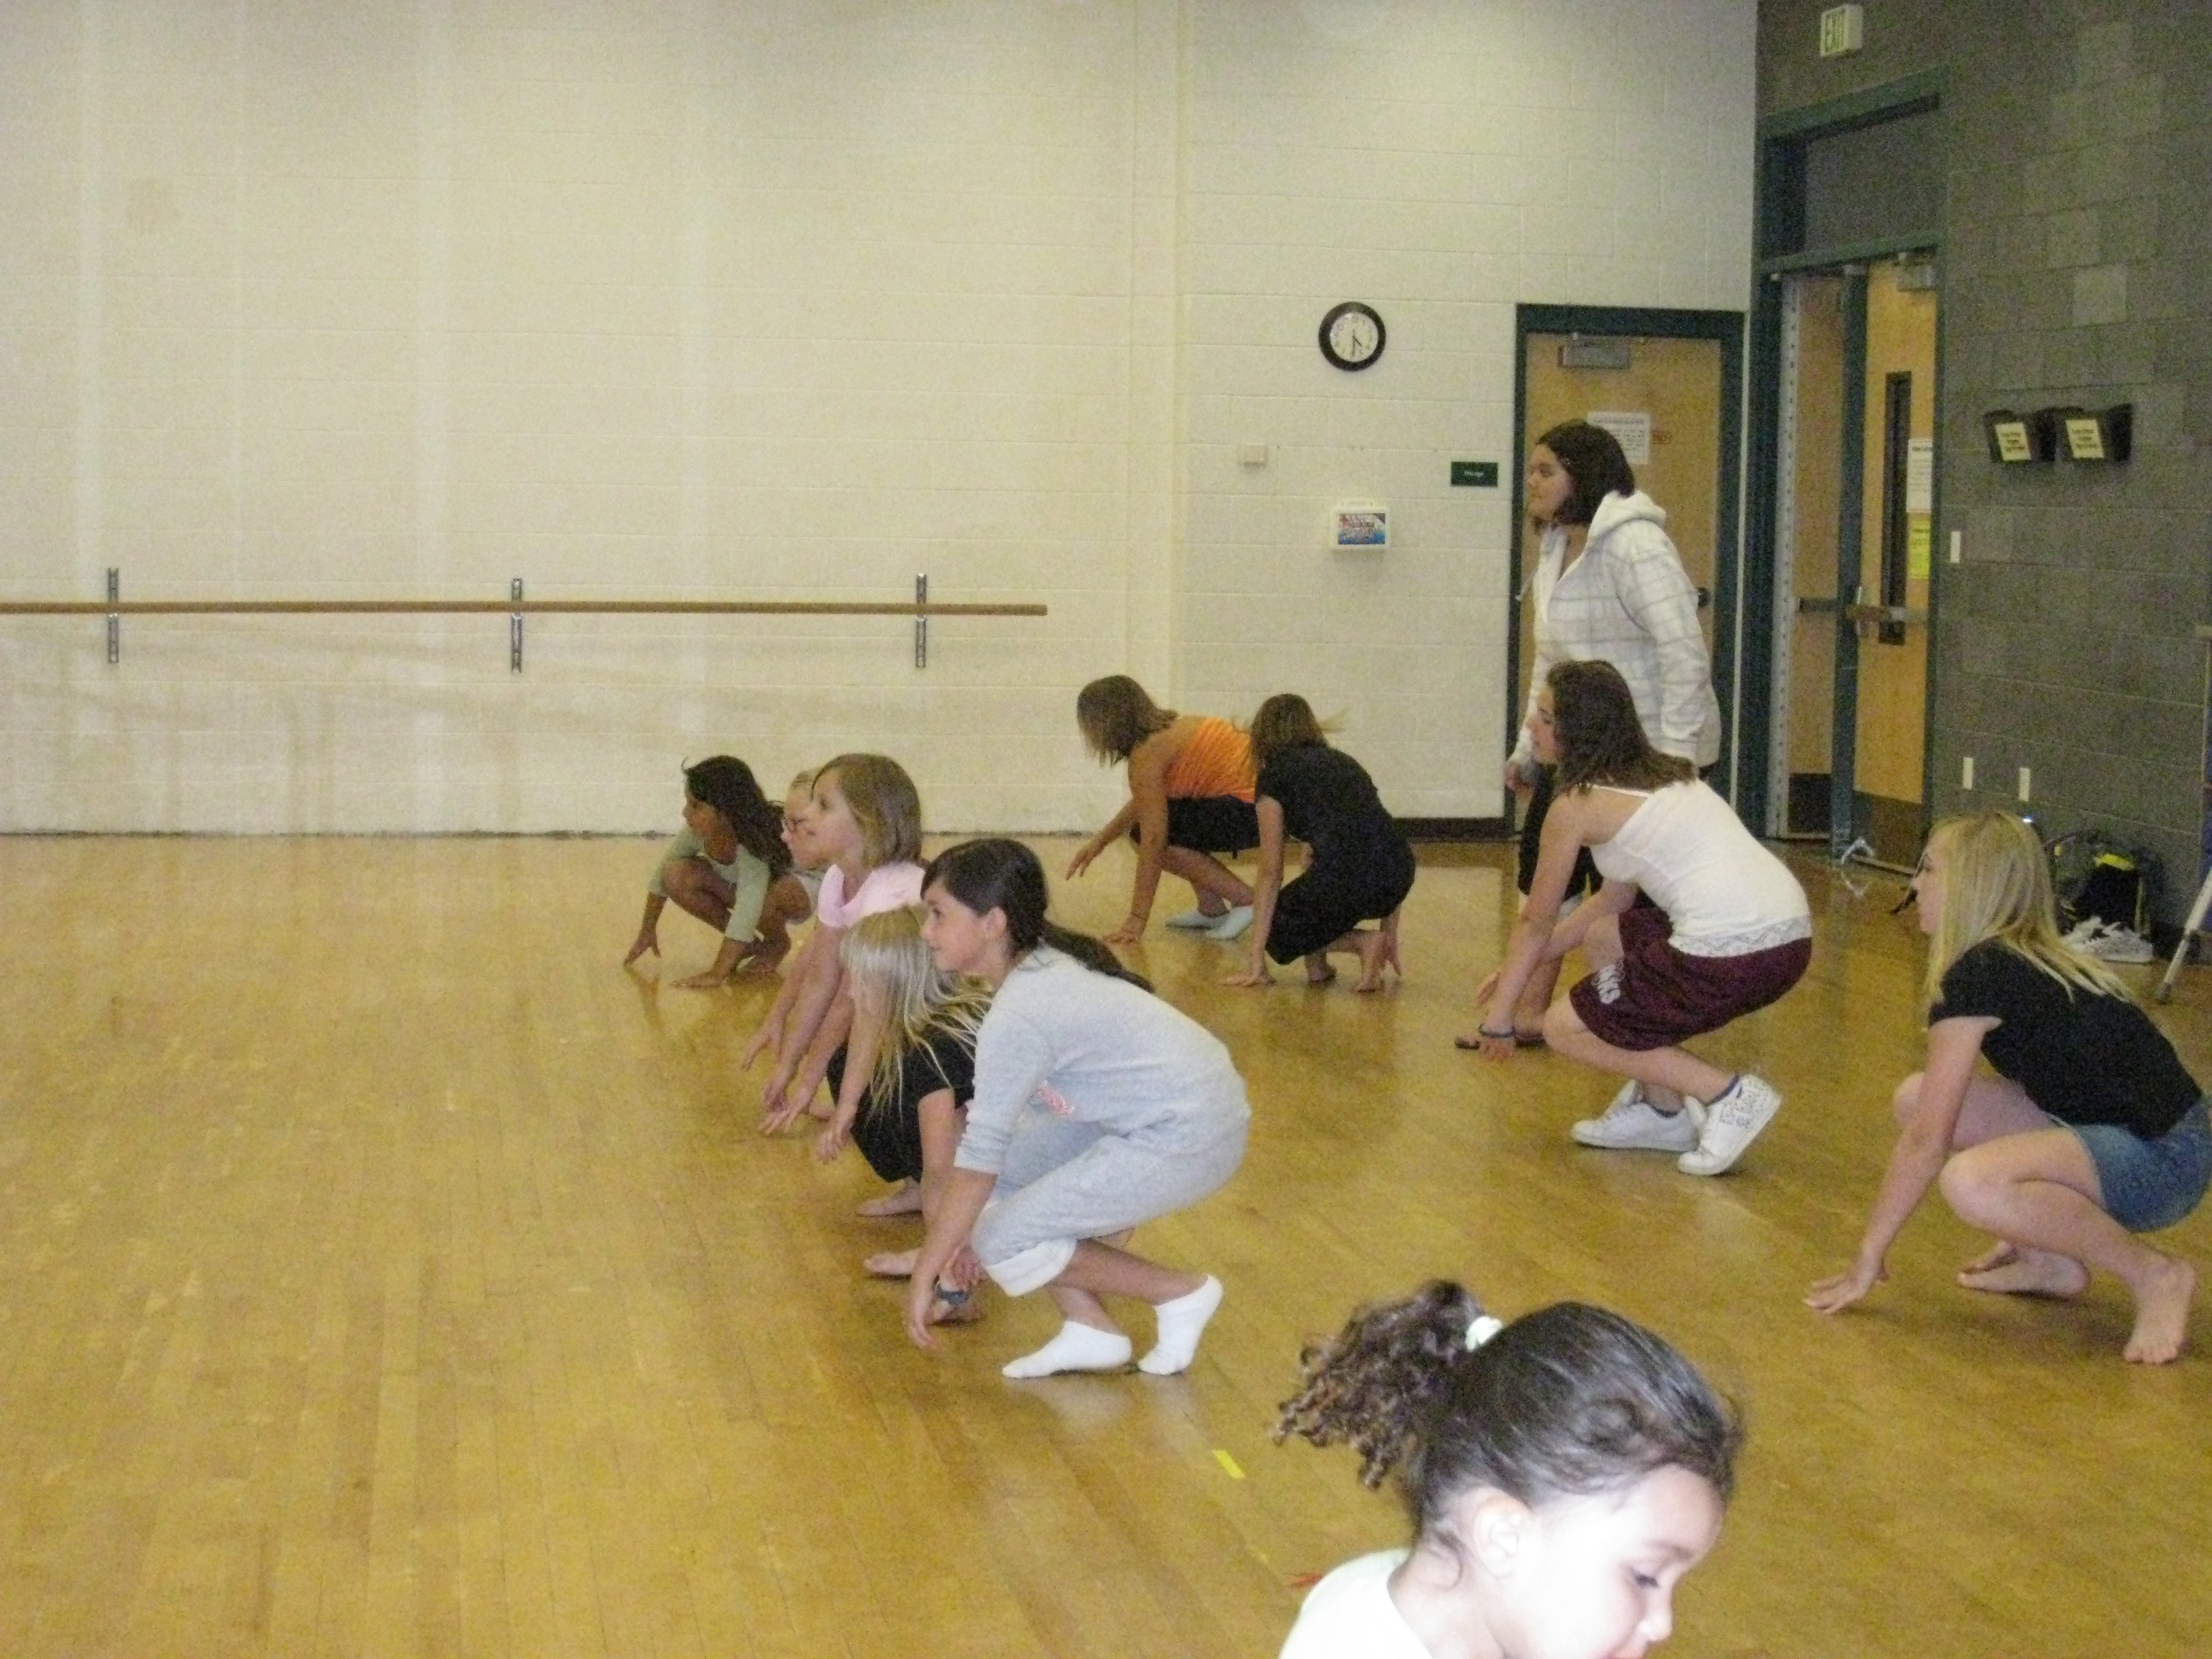 Class in session at Mesquite Recreation Center, Mesquite, Nevada, date not specified | Photo courtesy of Mesquite Athletics and Leisure Services Department, St. George News